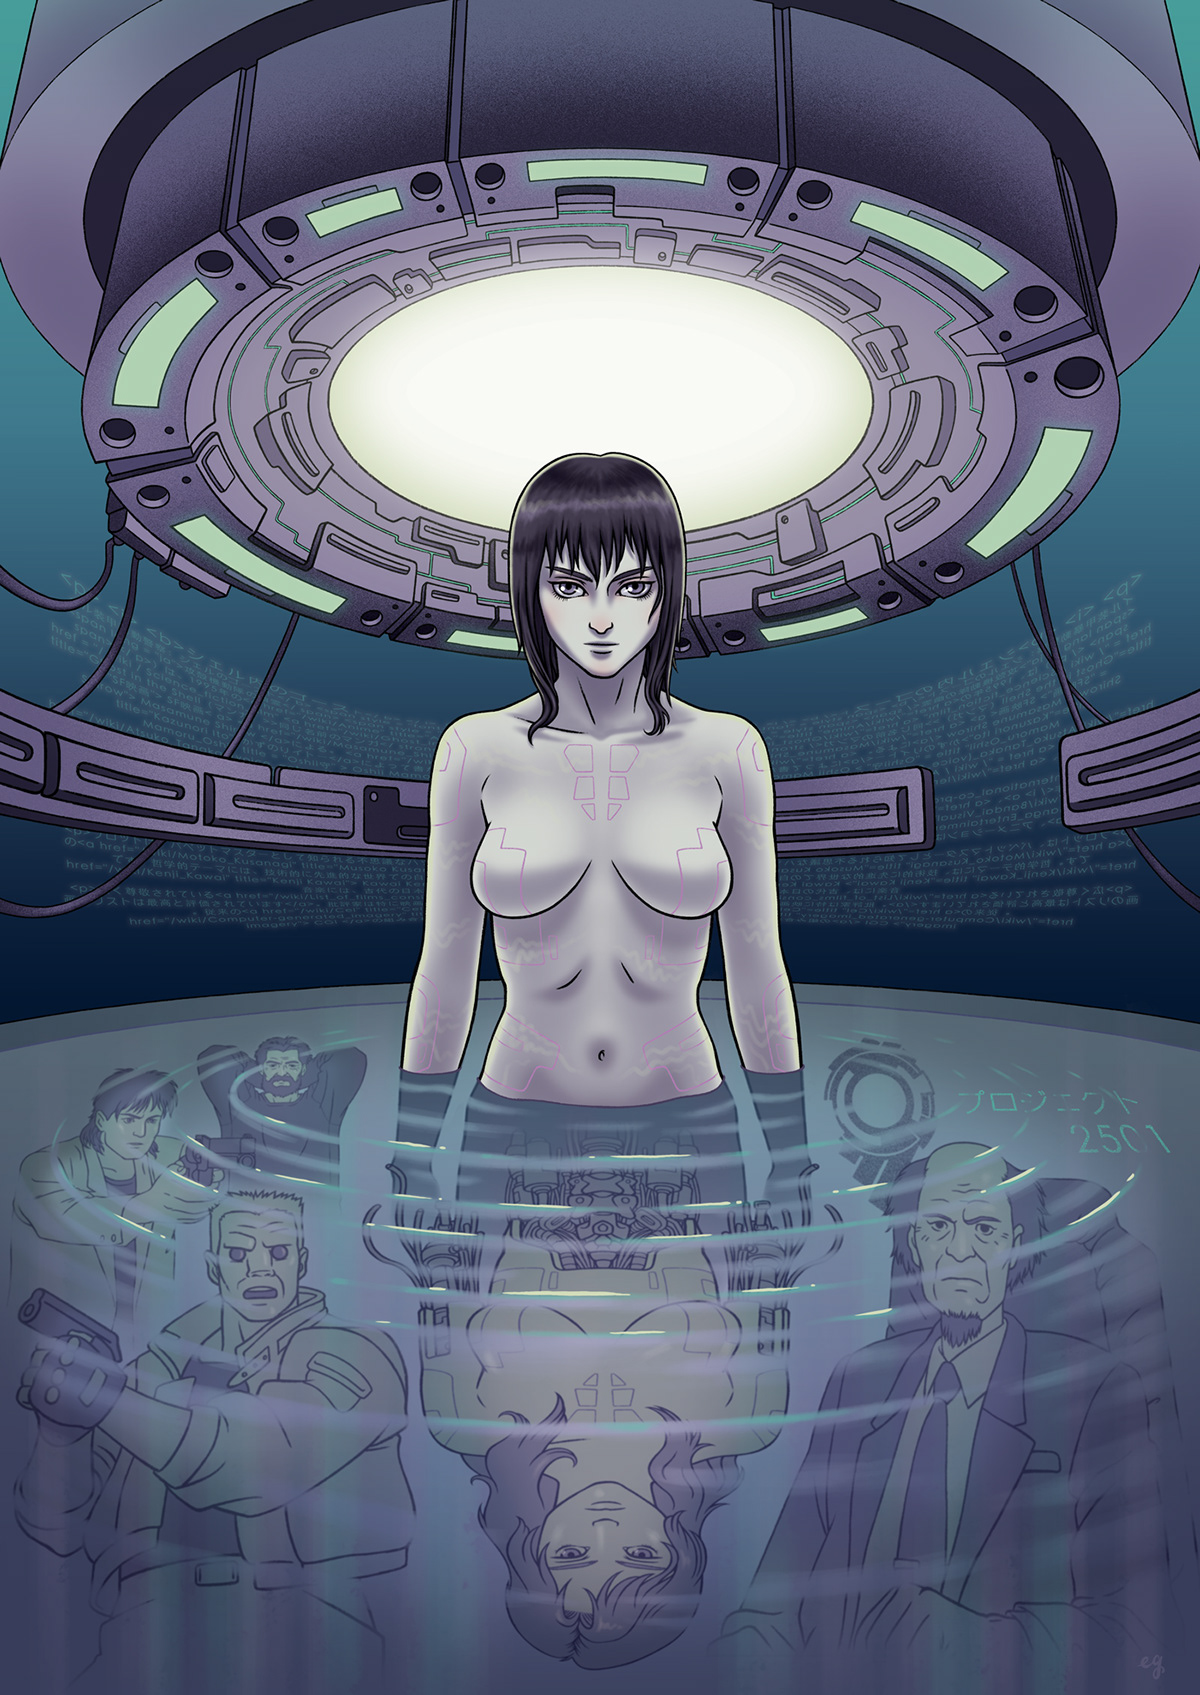 An image of Major Motoko Kusanagi from Ghost In The Shell.